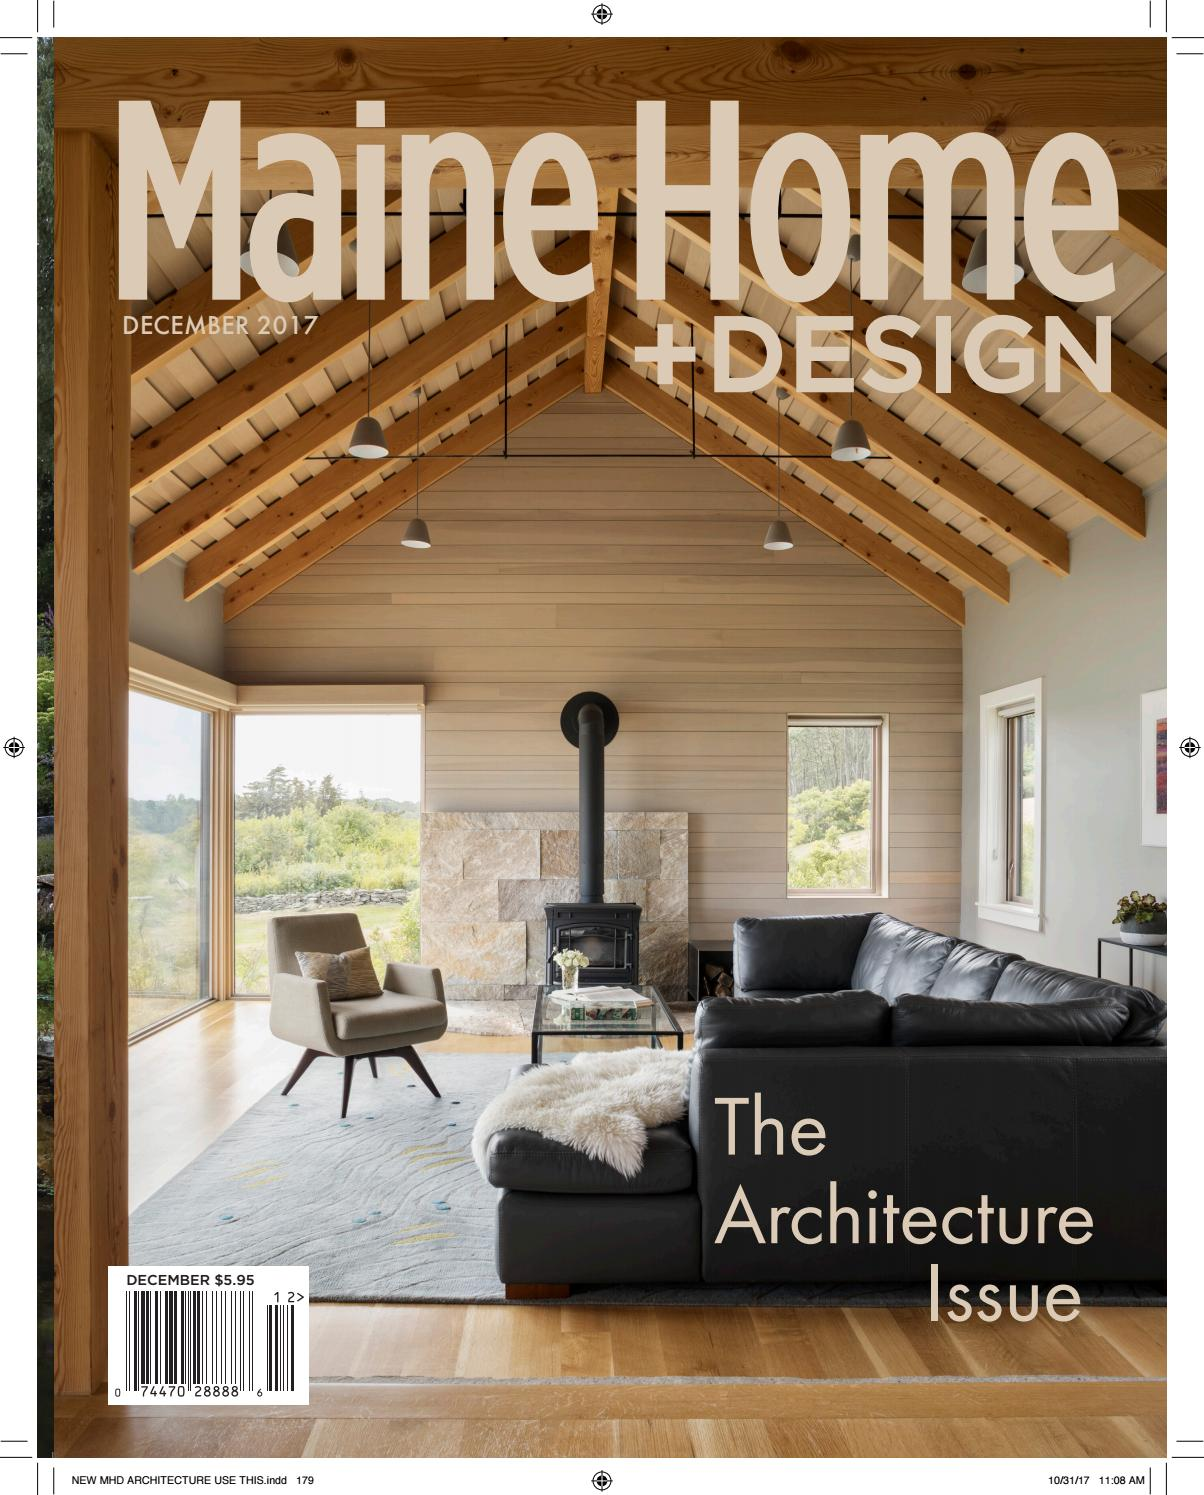 Maine home design december 2017